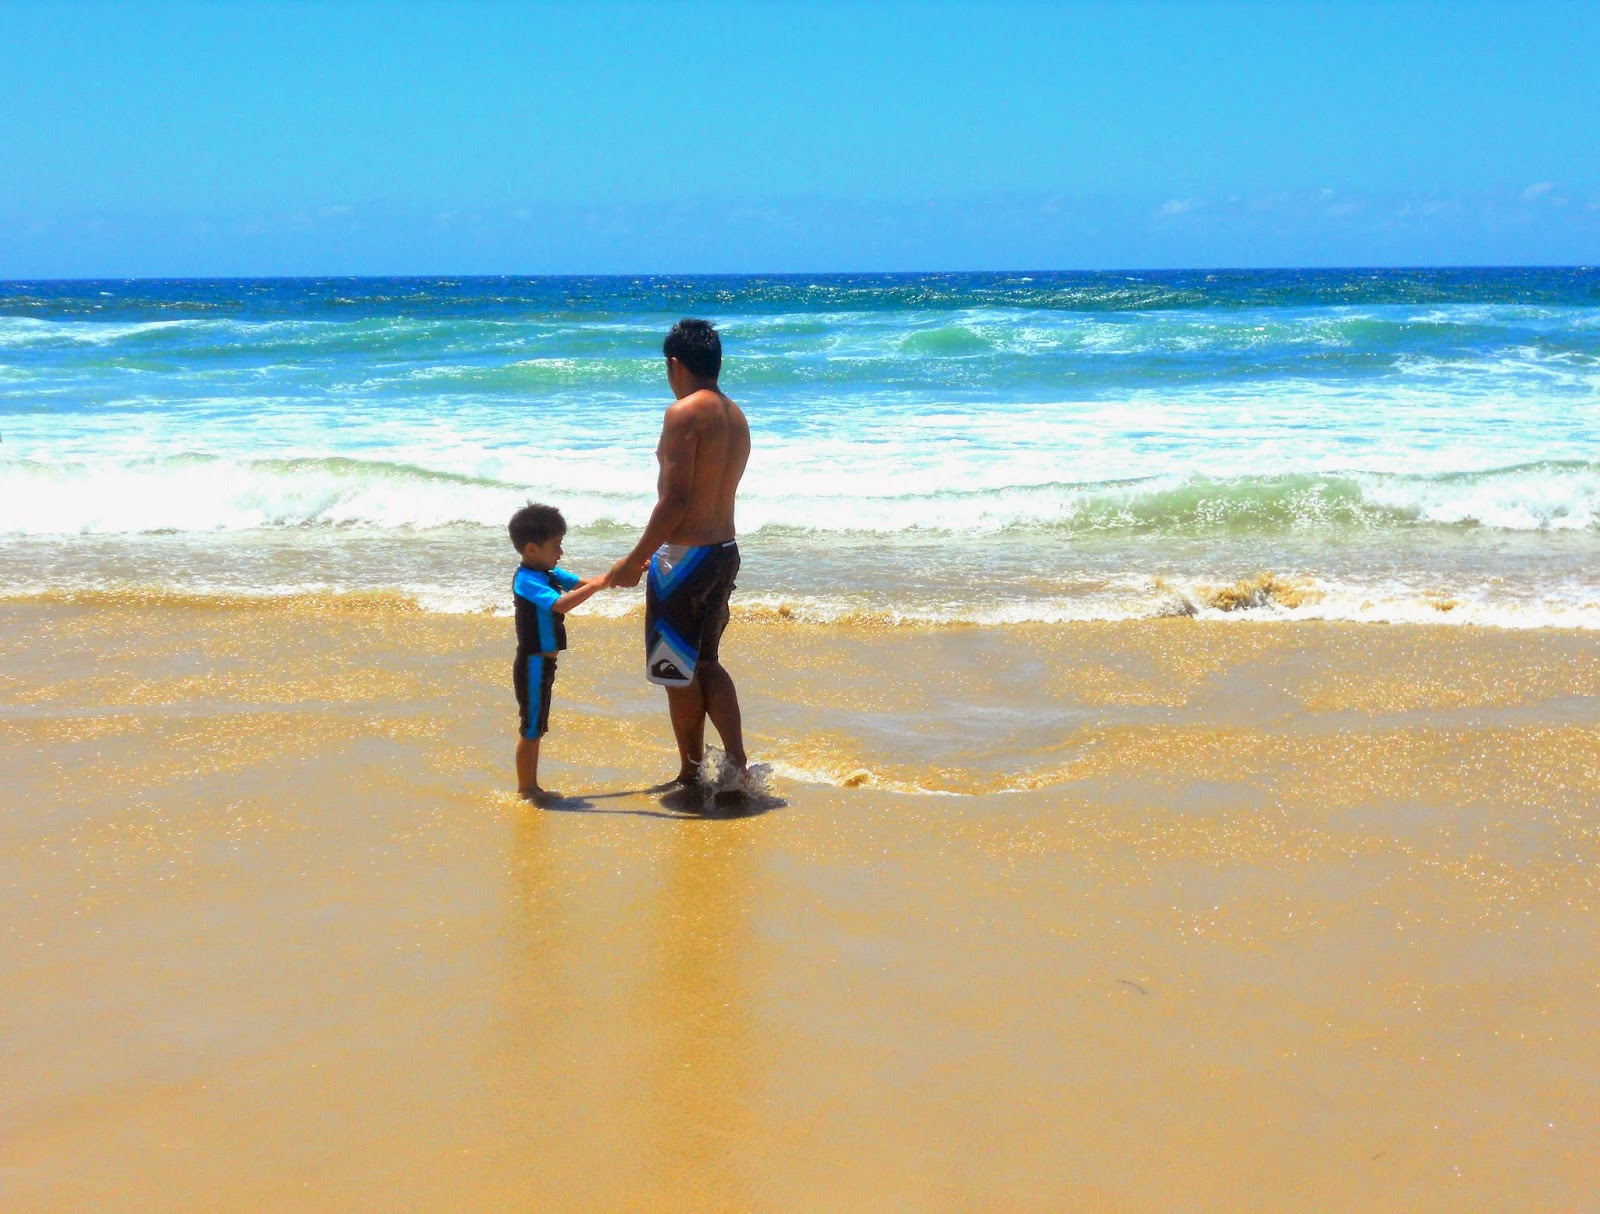 father and son, beach